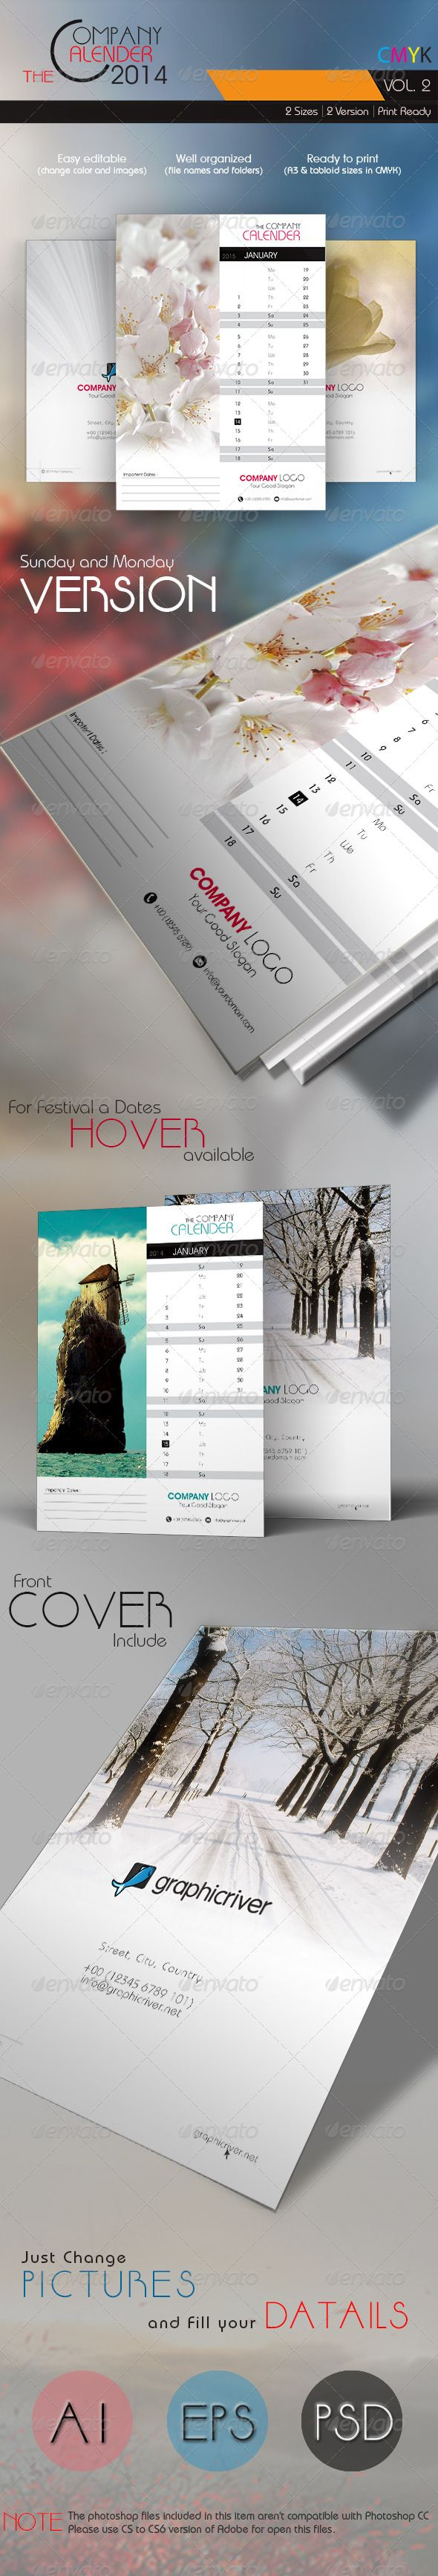 The Company Calender 2014 Vol. 2  #GraphicRiver         The Company Calendar 2014 Vol. 2 Fully Layered Ai Eps & PSD Layout // A3 & 11×17 inch (Tabloid) Versions Each calendar includes 13 months from January 2014 to January 2015 plus Front Cover. Clean, well organized and easy to use, just add in your own company or personal details, adjust the color, add your photos and you are ready to print. Features: 100 % Vector, Icons Included, Fully editable text, Important dates corner, Monday and…